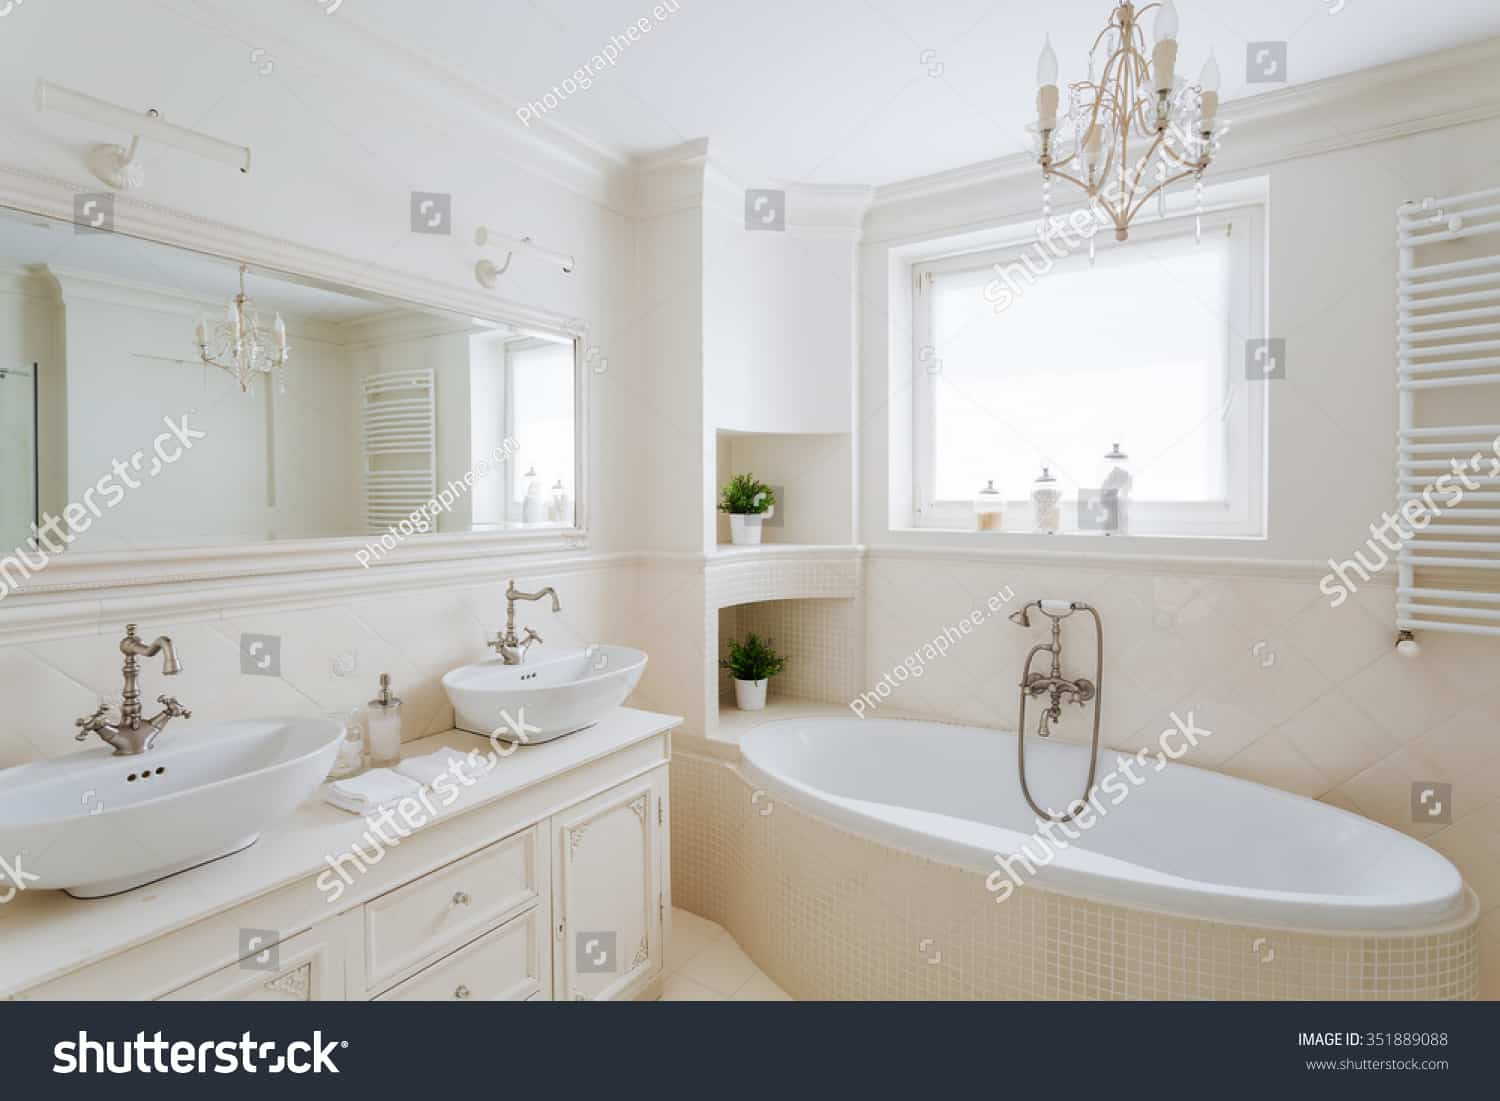 stock photo horizontal picture of a showy bathroom designed in creamy colors 351889088 1